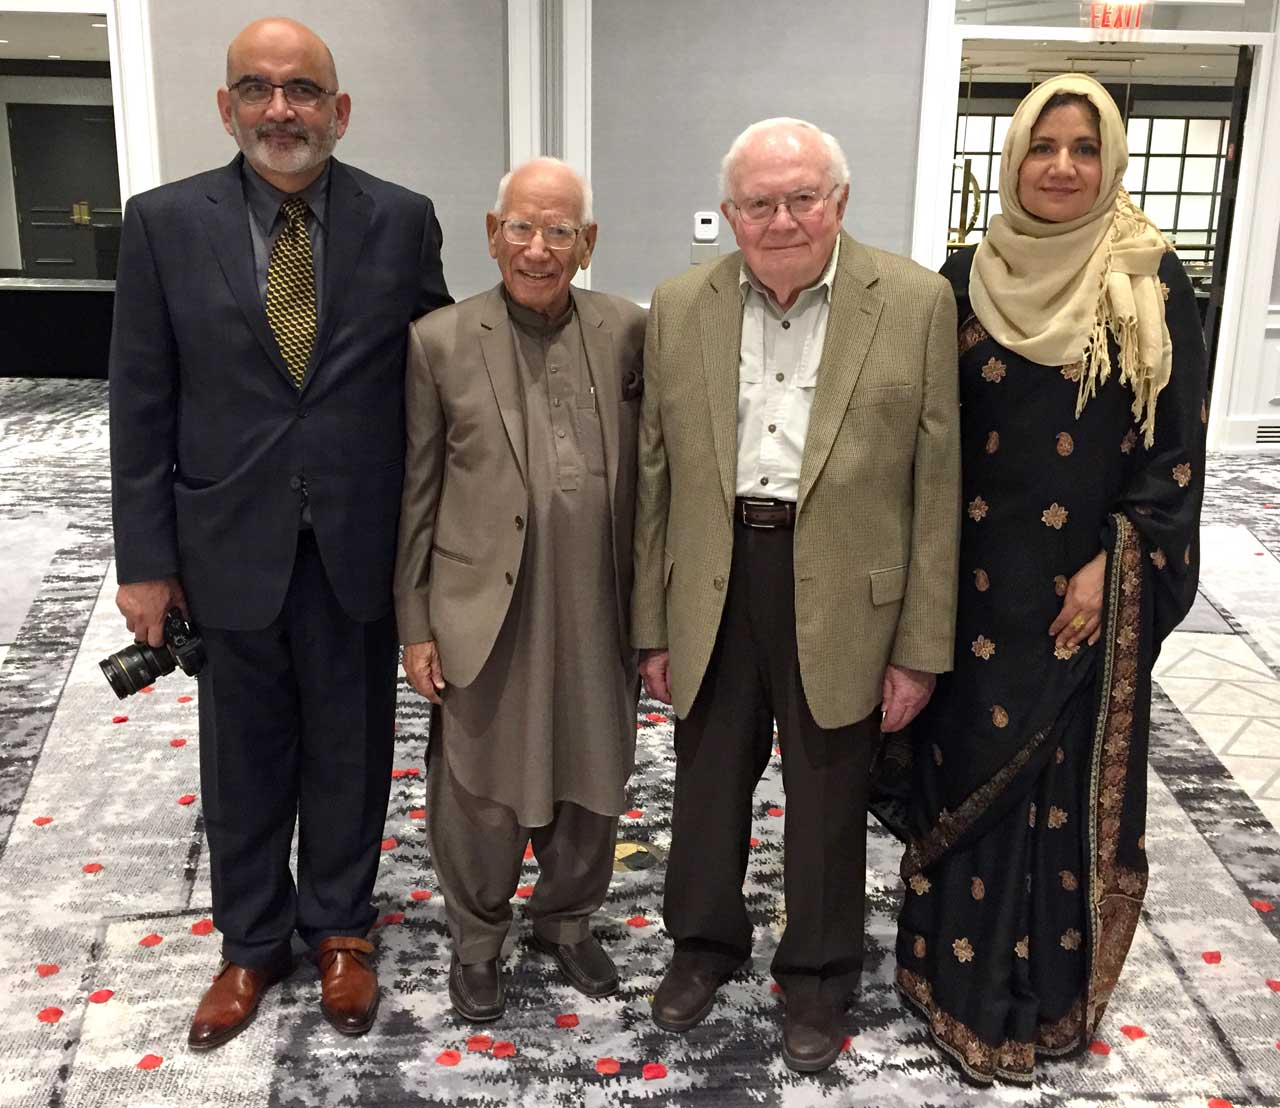 Frank and Shaikh posing with Athar and Nadia Pasha (Oregon couple and both Aramco brats).